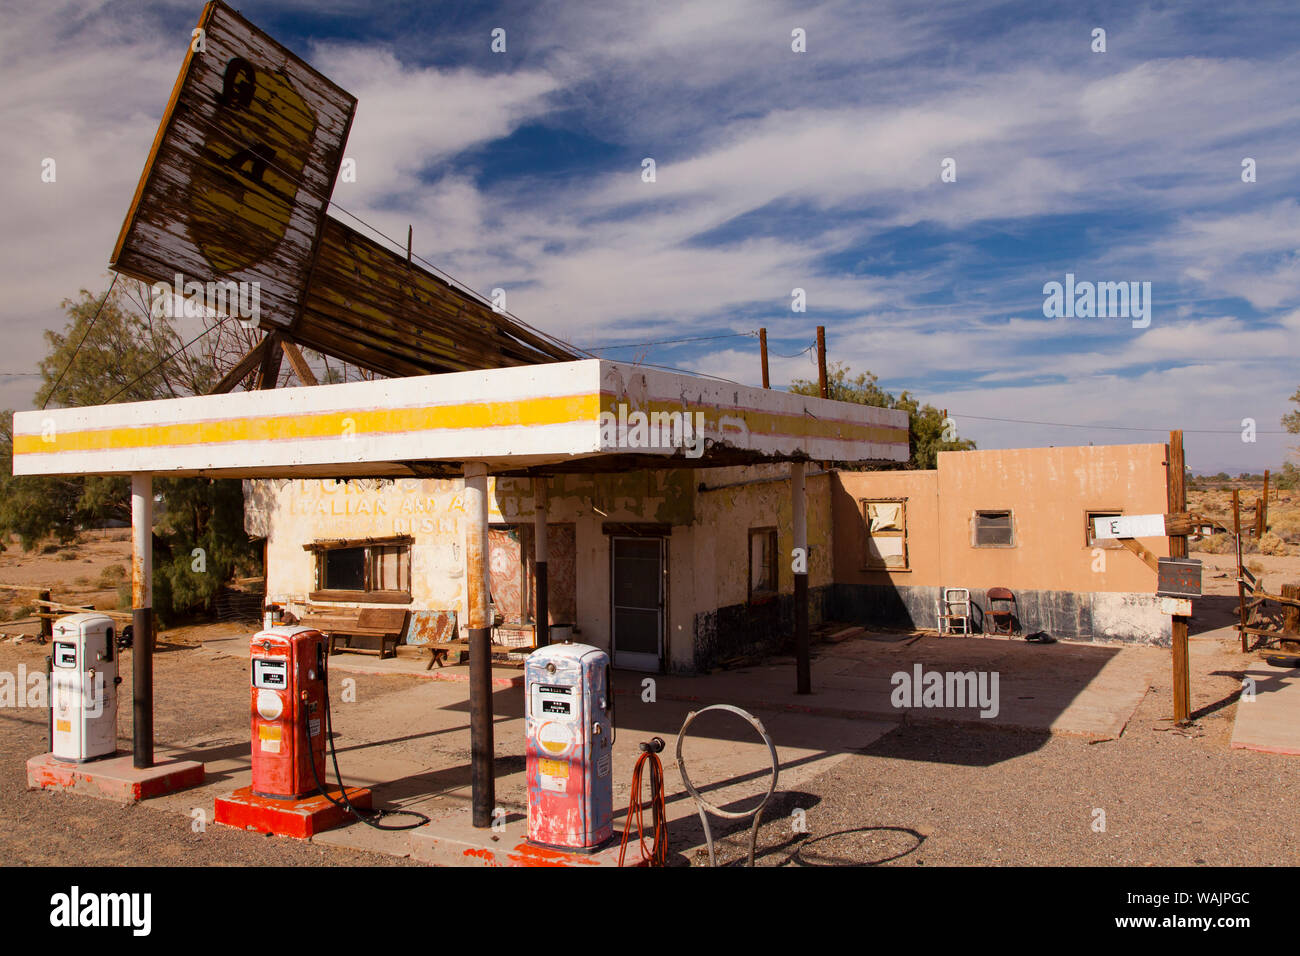 Abandoned Gas Station On Route 66 In The Mojave Desert California Usa Stock Photo Alamy